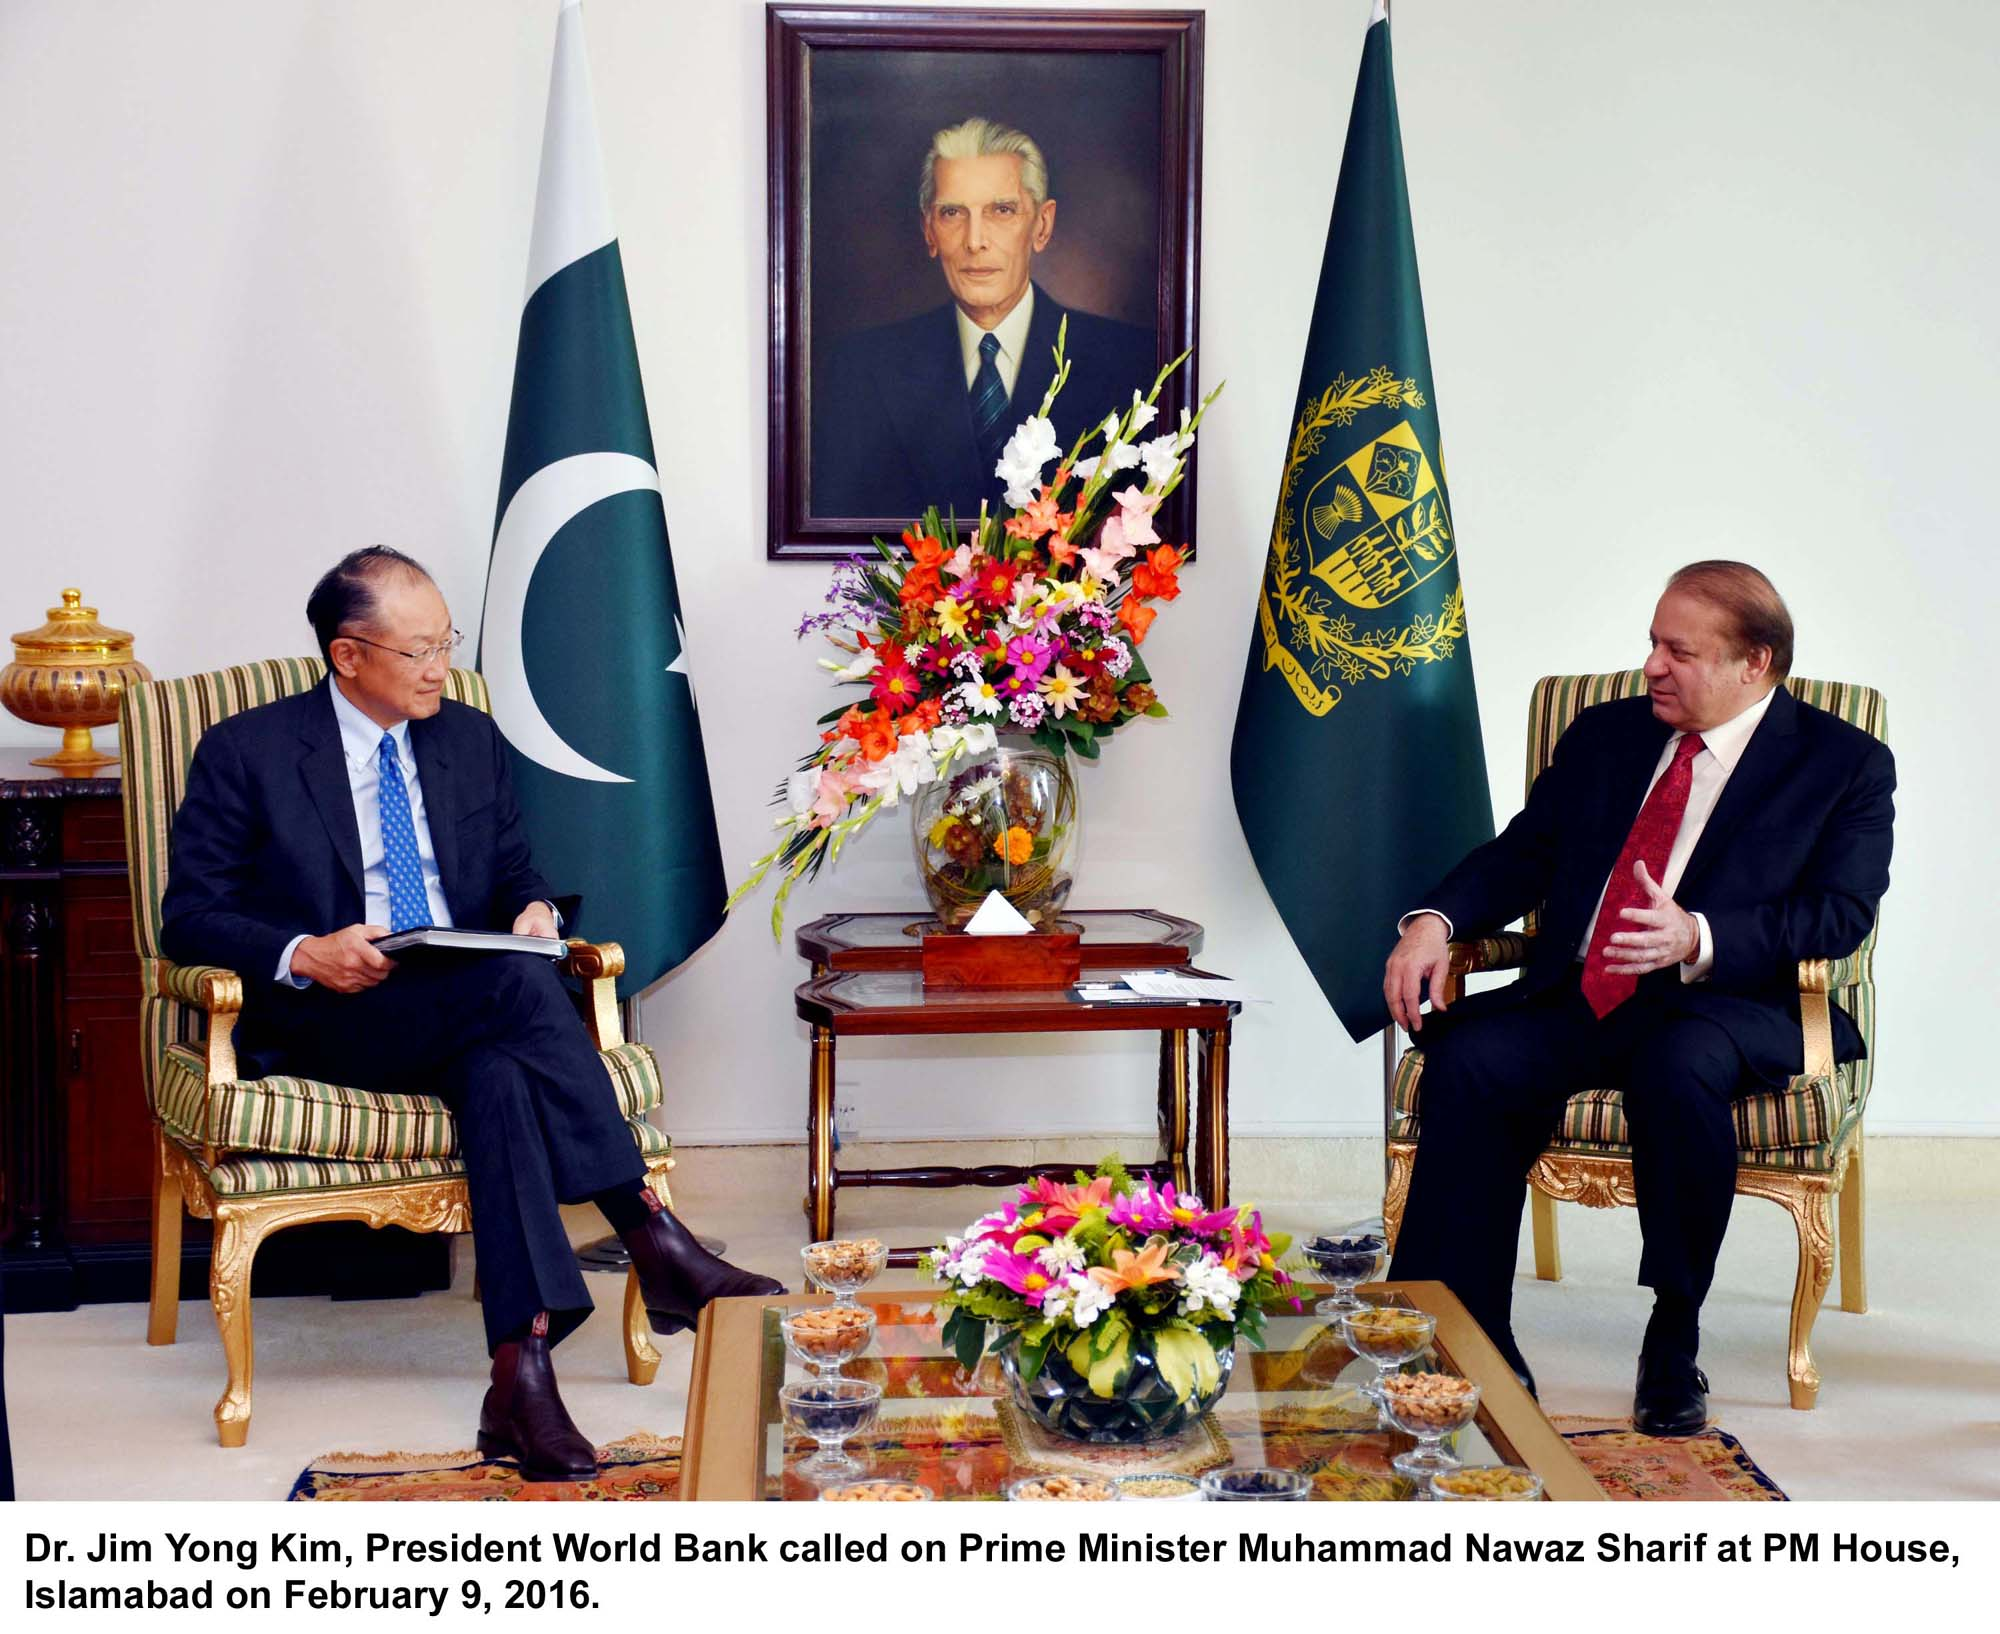 Dr. Jim Yong Kim, President World Bank called on Prime Minister Muhammad Nawaz Sharif at PM House, Islamabad on February 9, 2016.